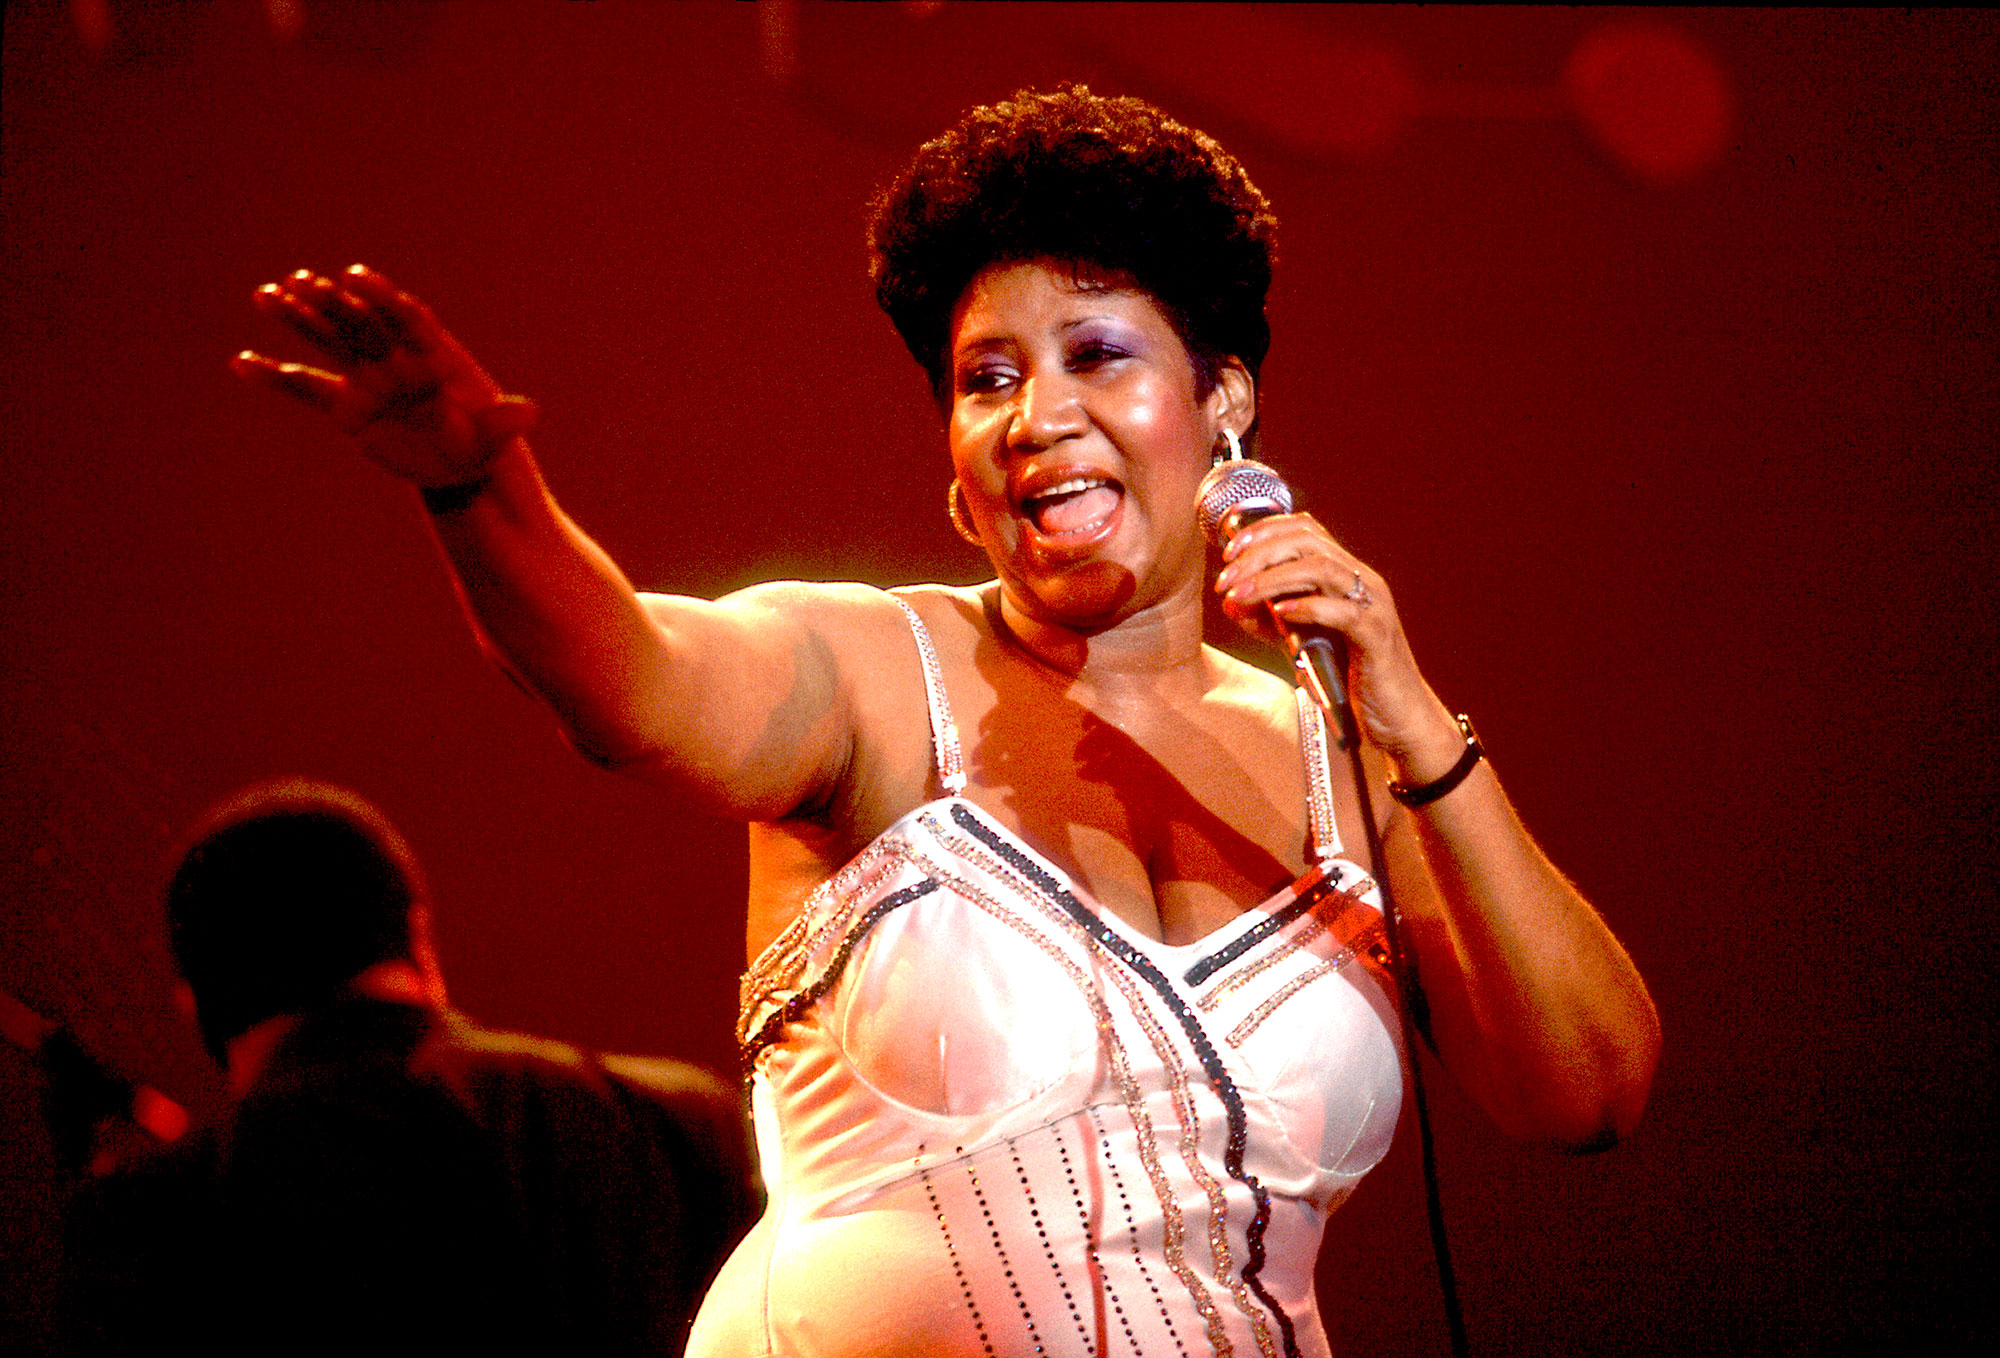 American musician Aretha Franklin performs on stage at the Park West Auditorium, Chicago, Illinois, March 23, 1992.